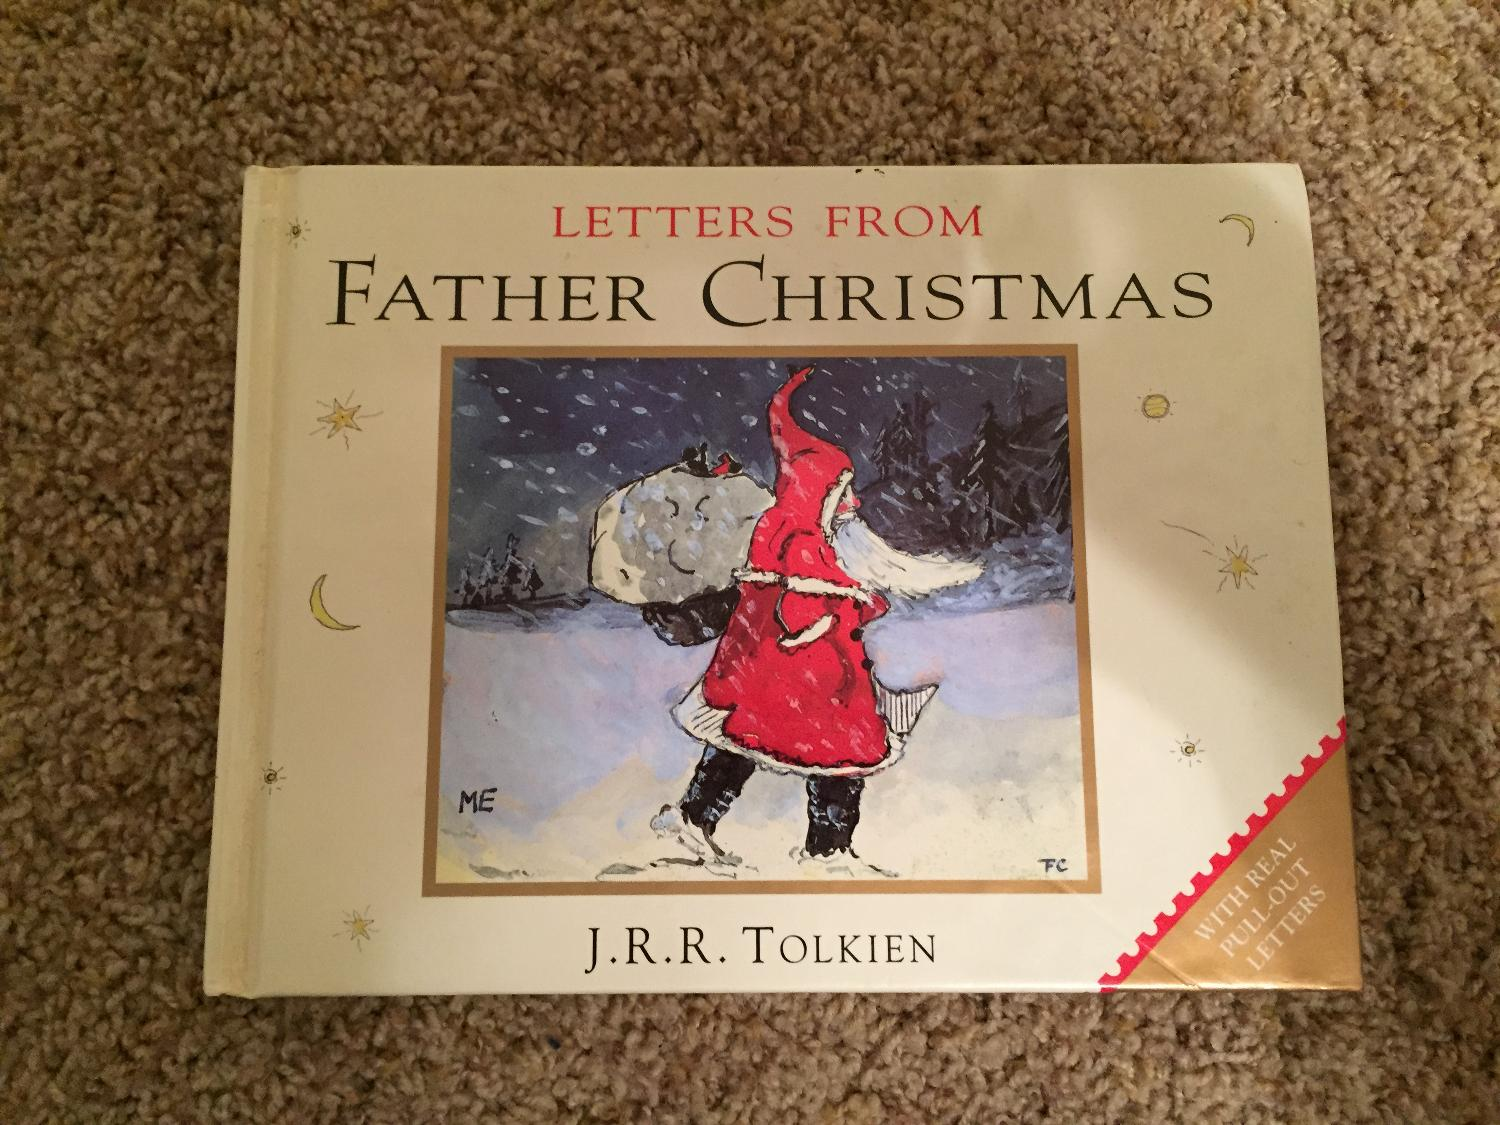 Father Christmas Letters Tolkien.Letters From Father Christmas Hardcover J R R Tolkien Excellent Condition